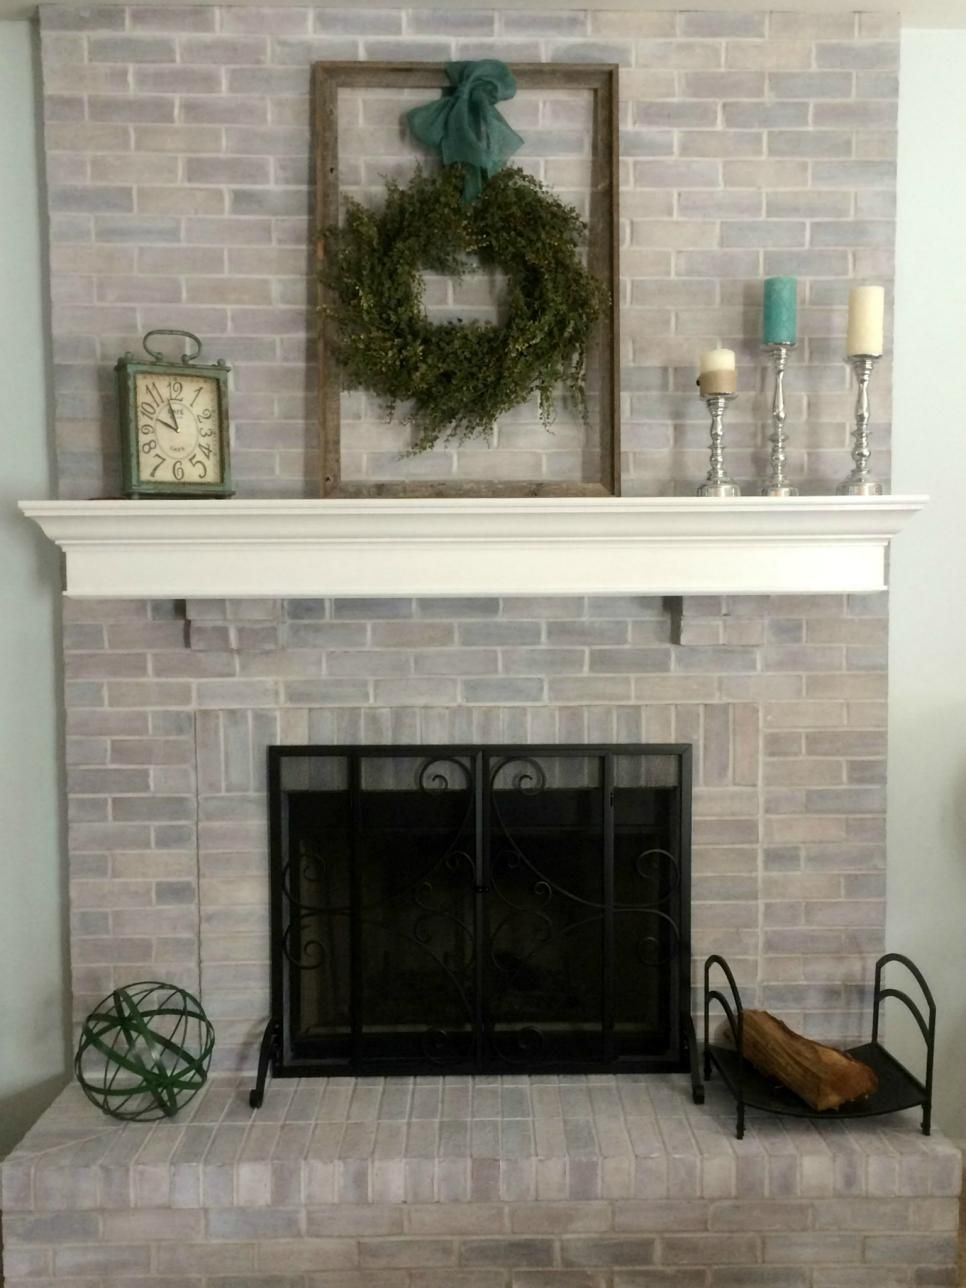 Hgtv Has 15 Stylish Ideas For Updating A Fireplace From Easy Diy Remodels To Larger Projects